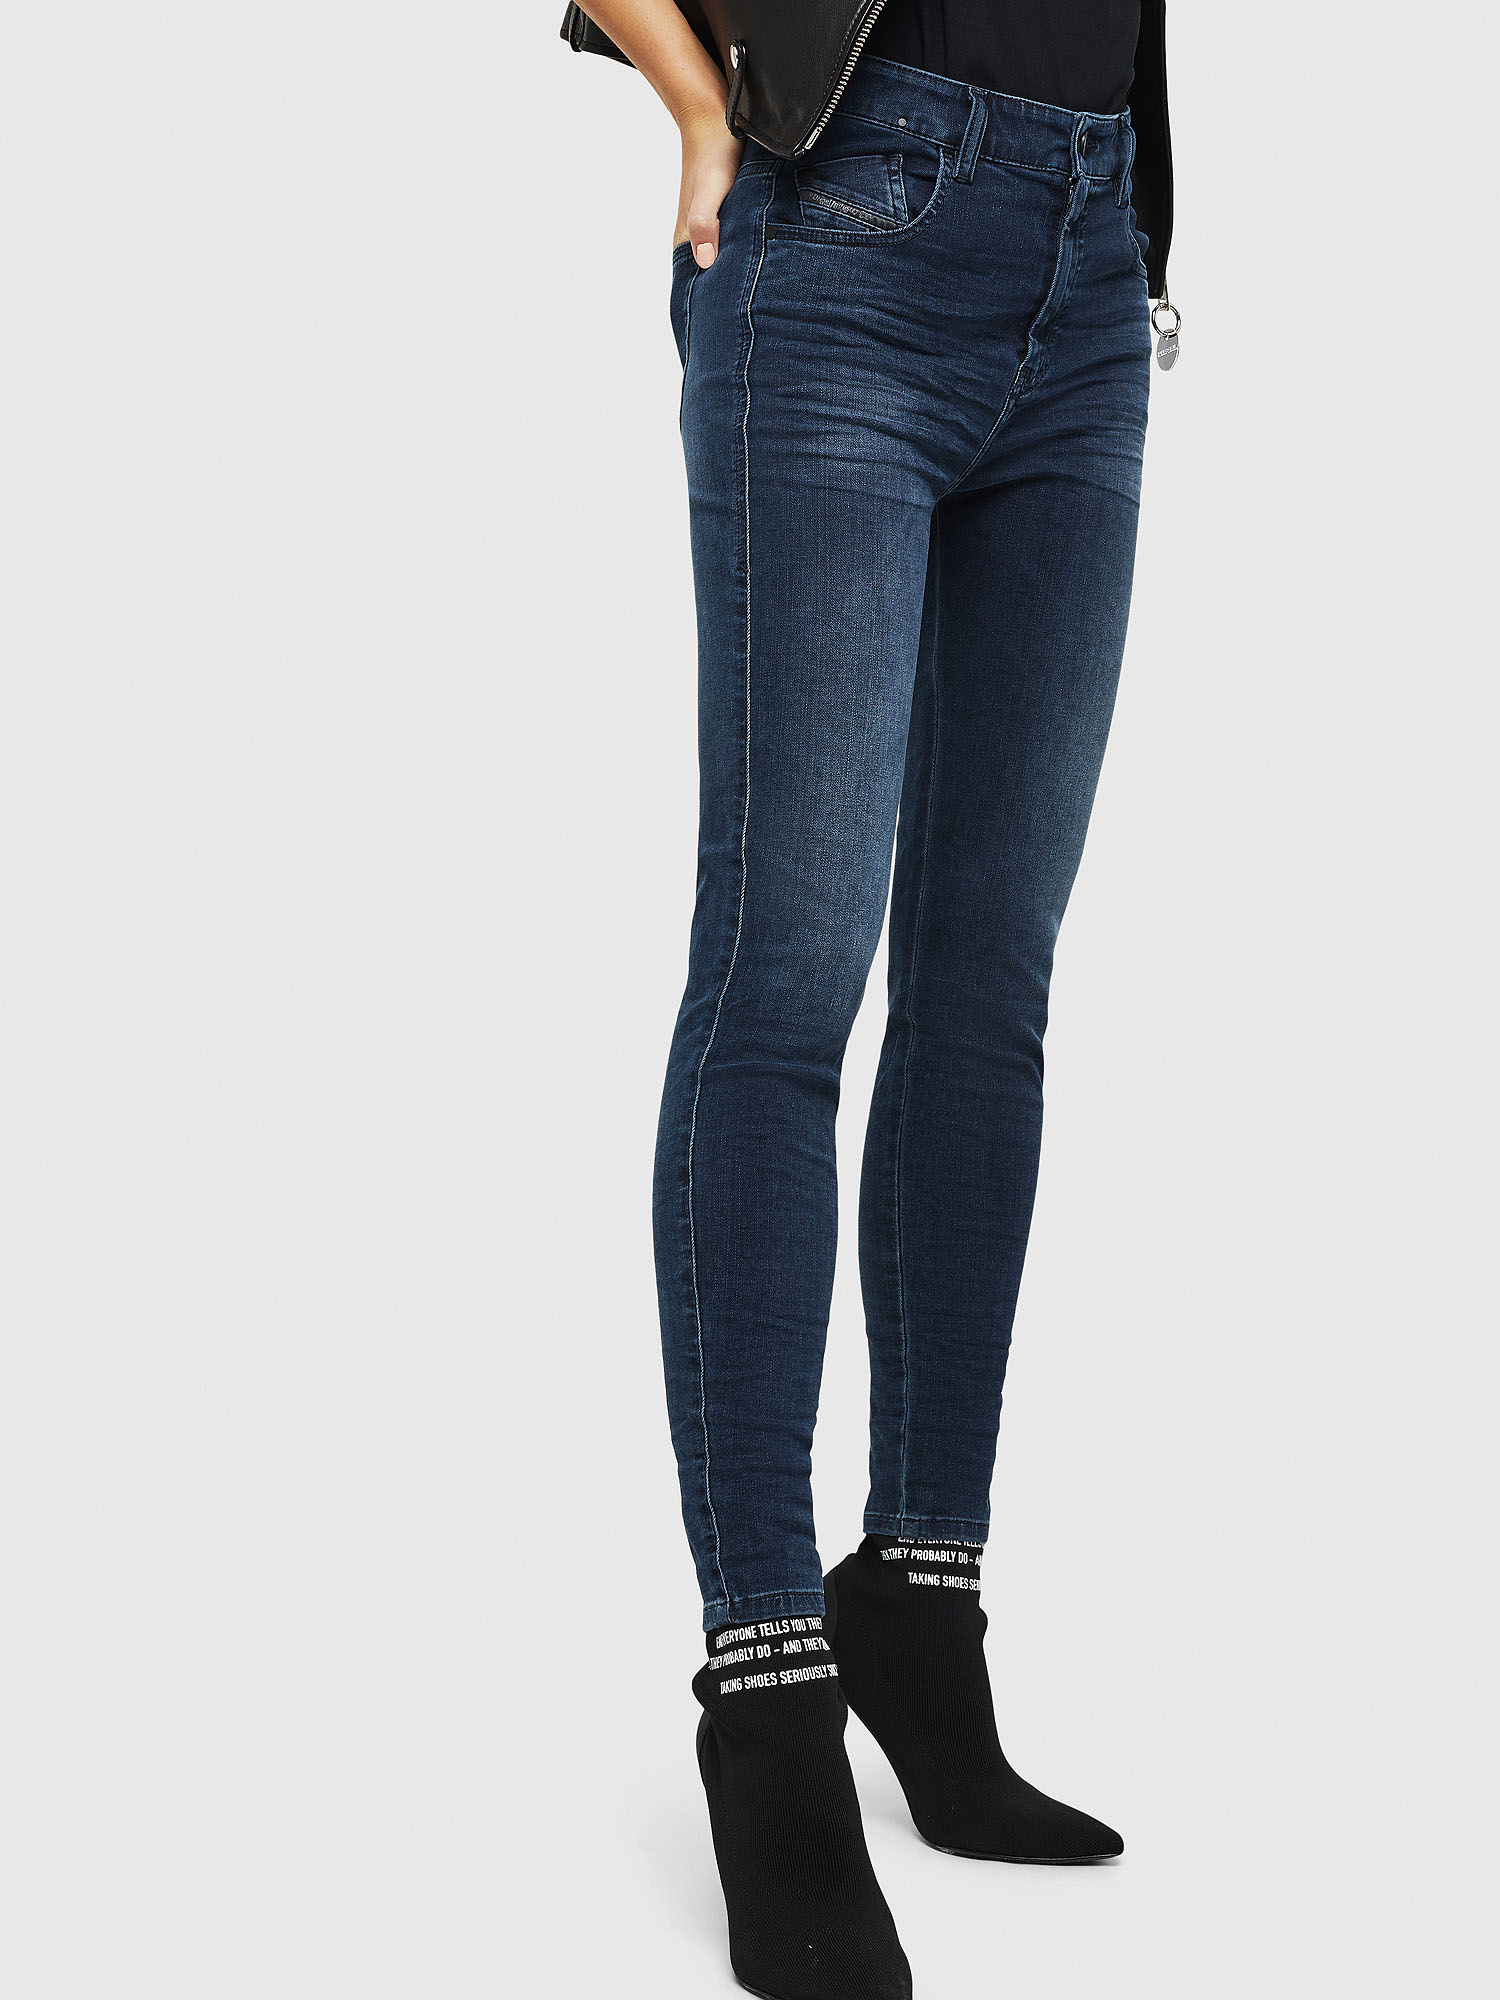 Diesel - Slandy High 084UT,  - Jeans - Image 4